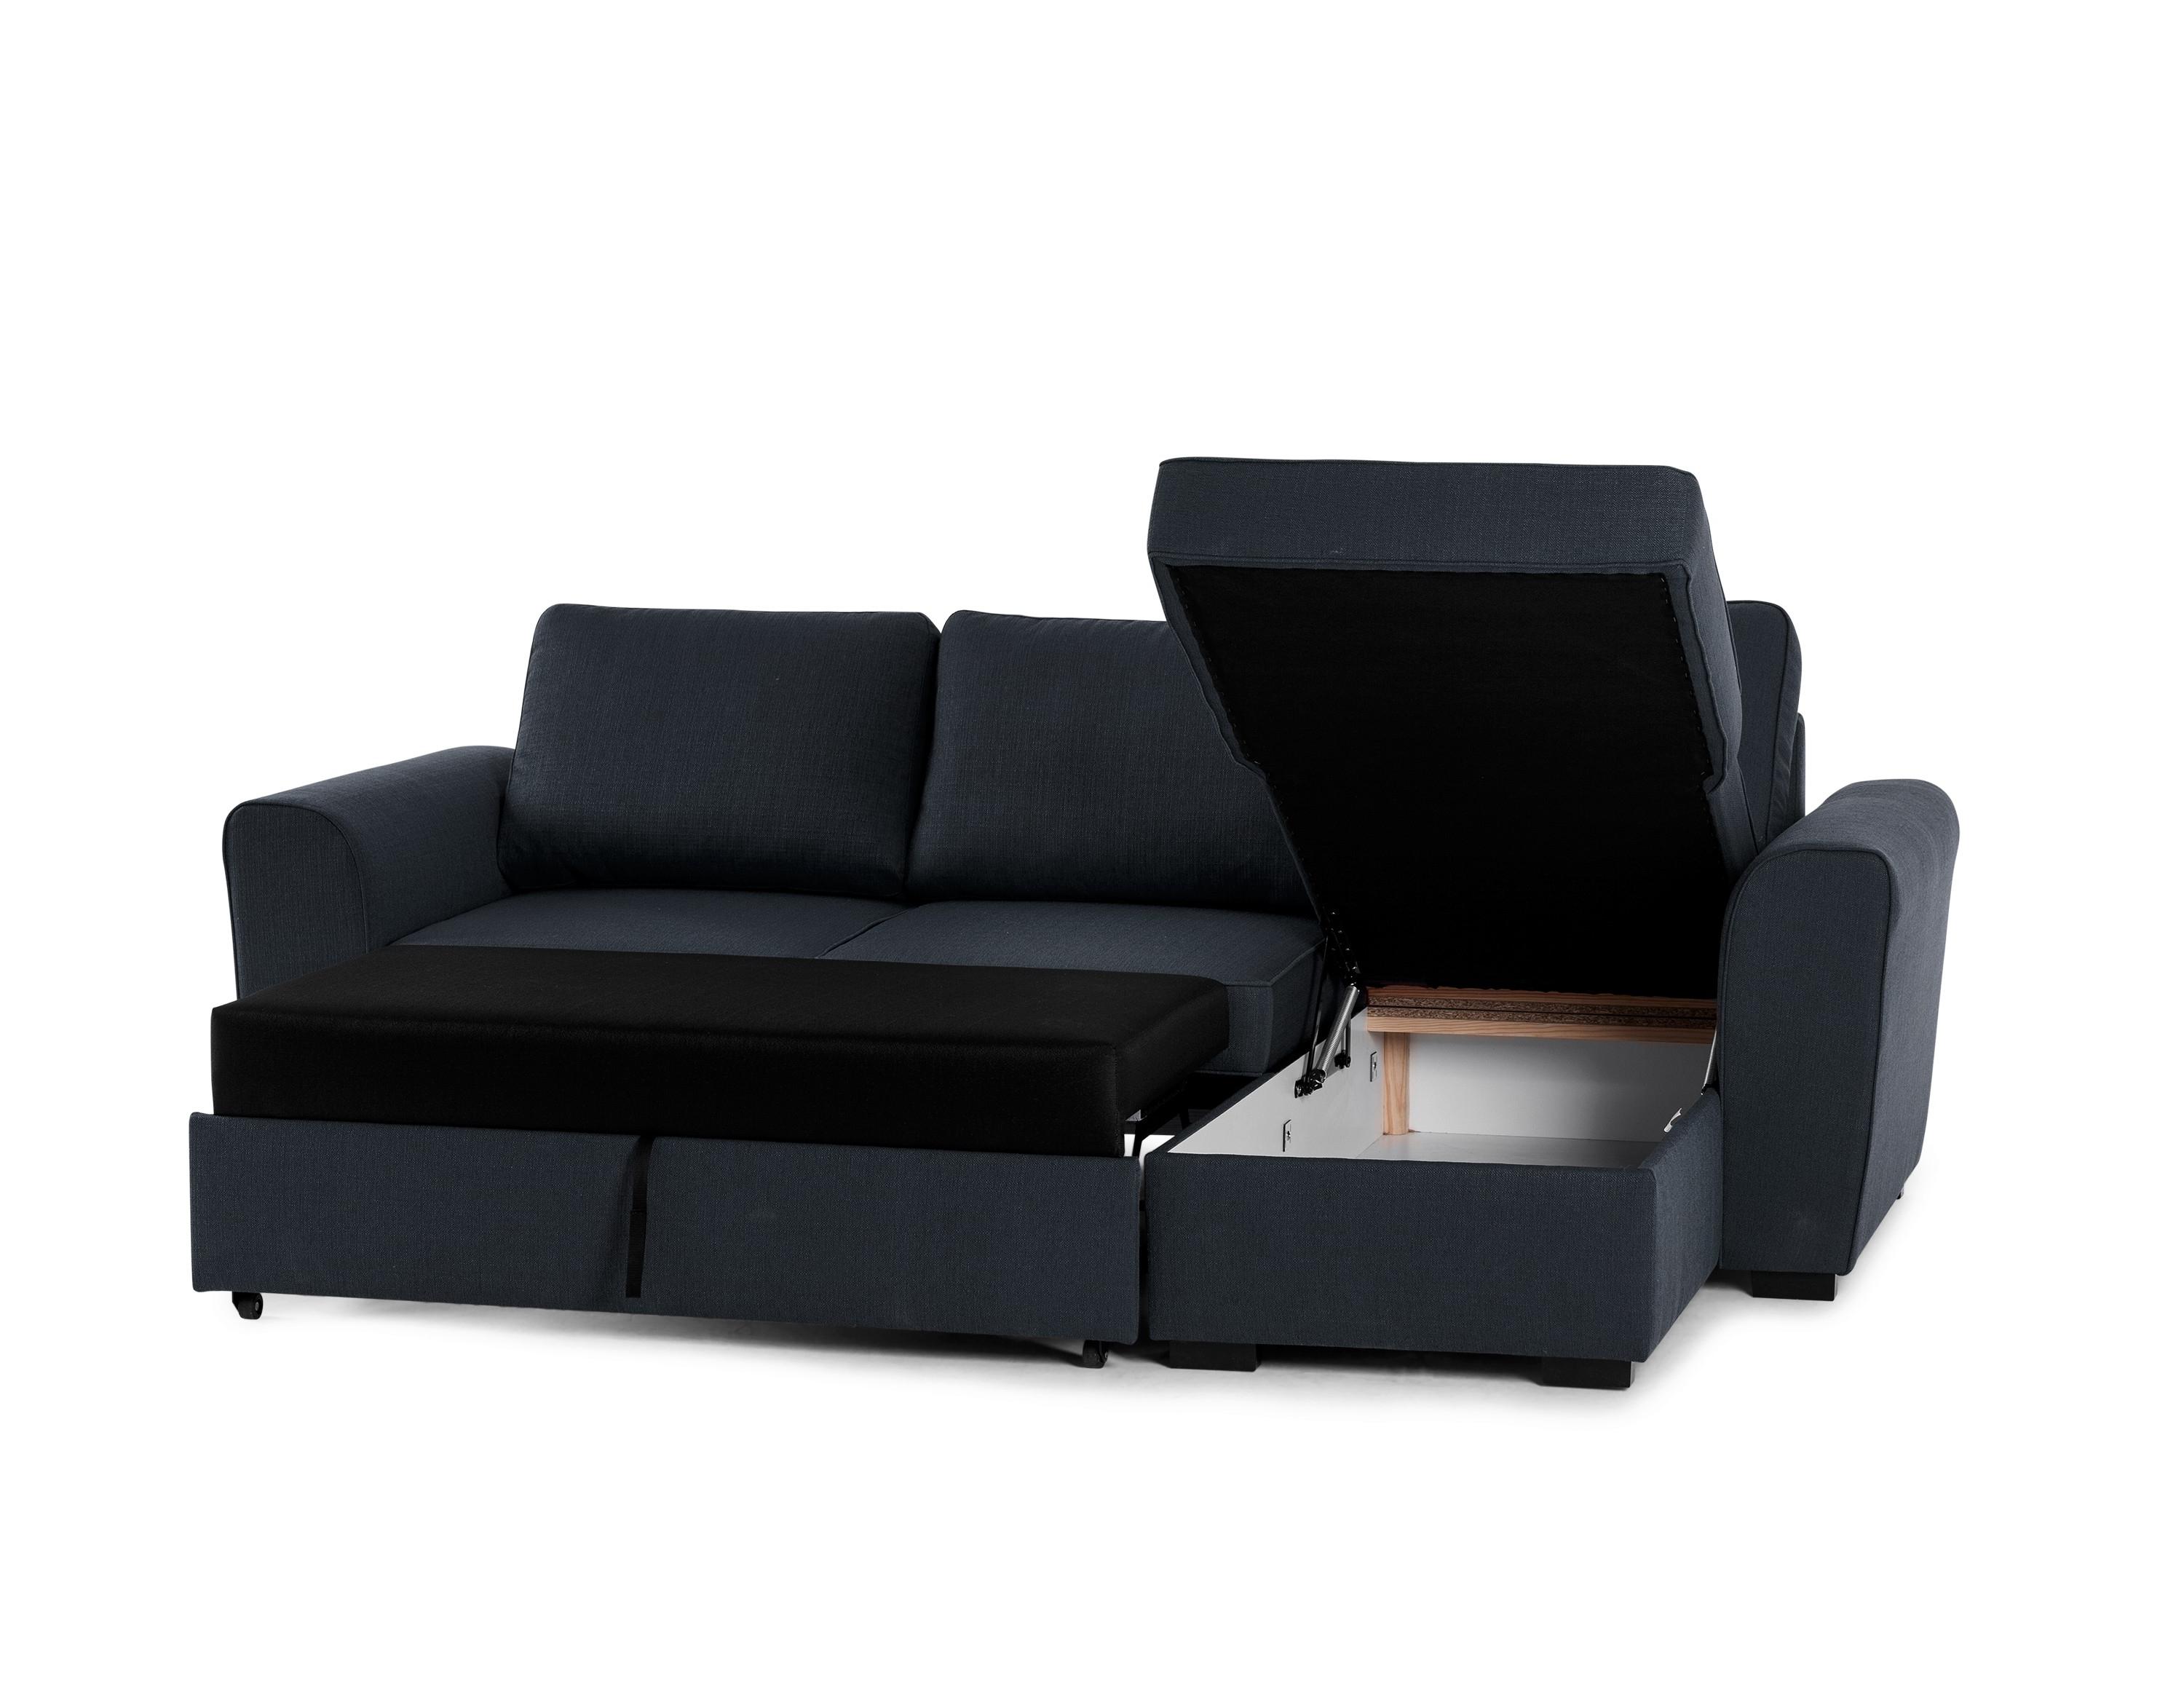 Newest Leather Armchair And Ottoman Chaise Sofa With Storage Ottoman For Leather Sofas With Storage (View 11 of 15)